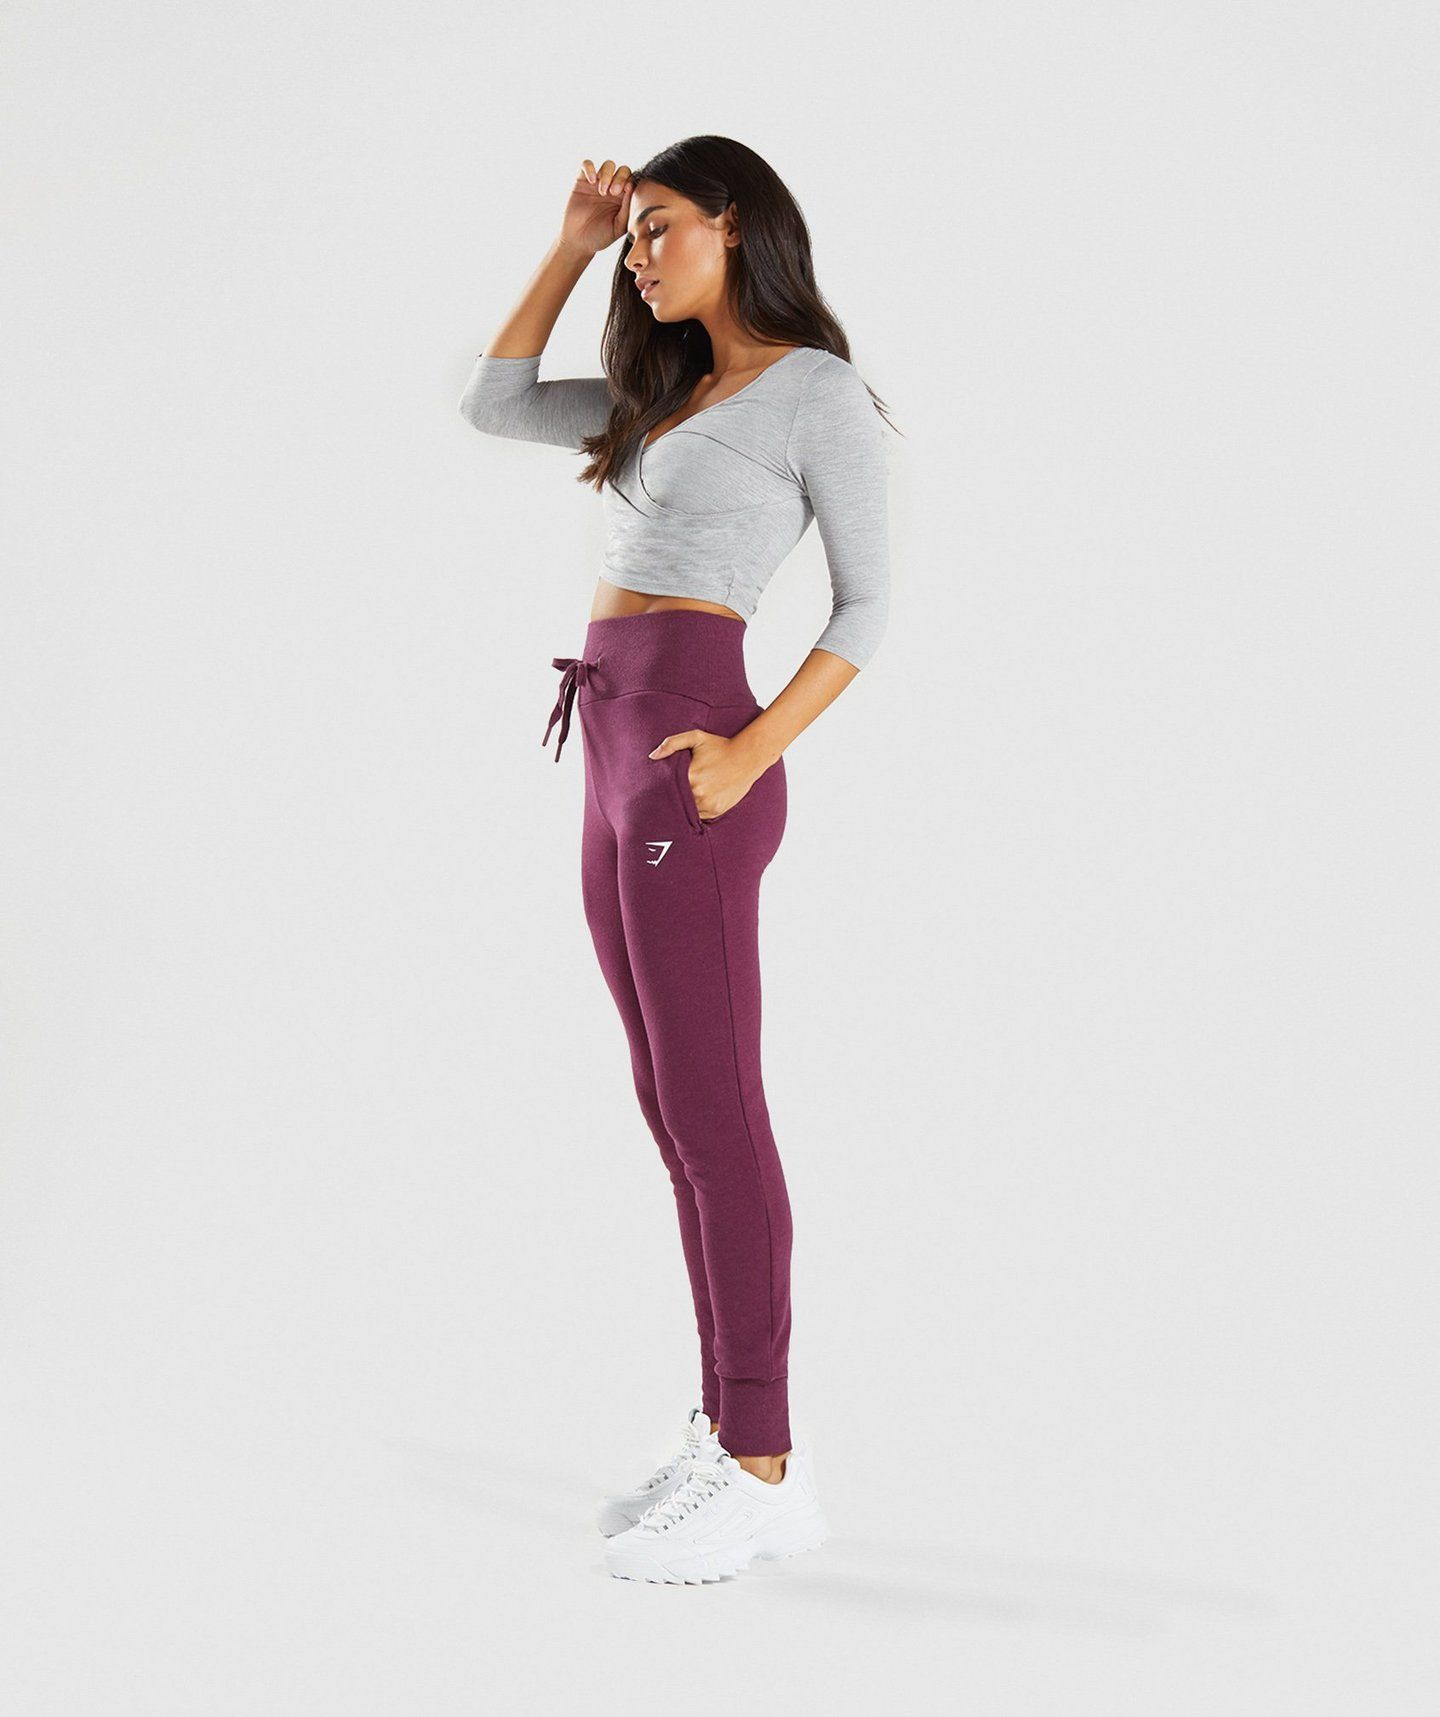 a9218c7d4f4f7 Gymshark High Waisted Joggers - Dark Ruby Marl | Workout clothes ...